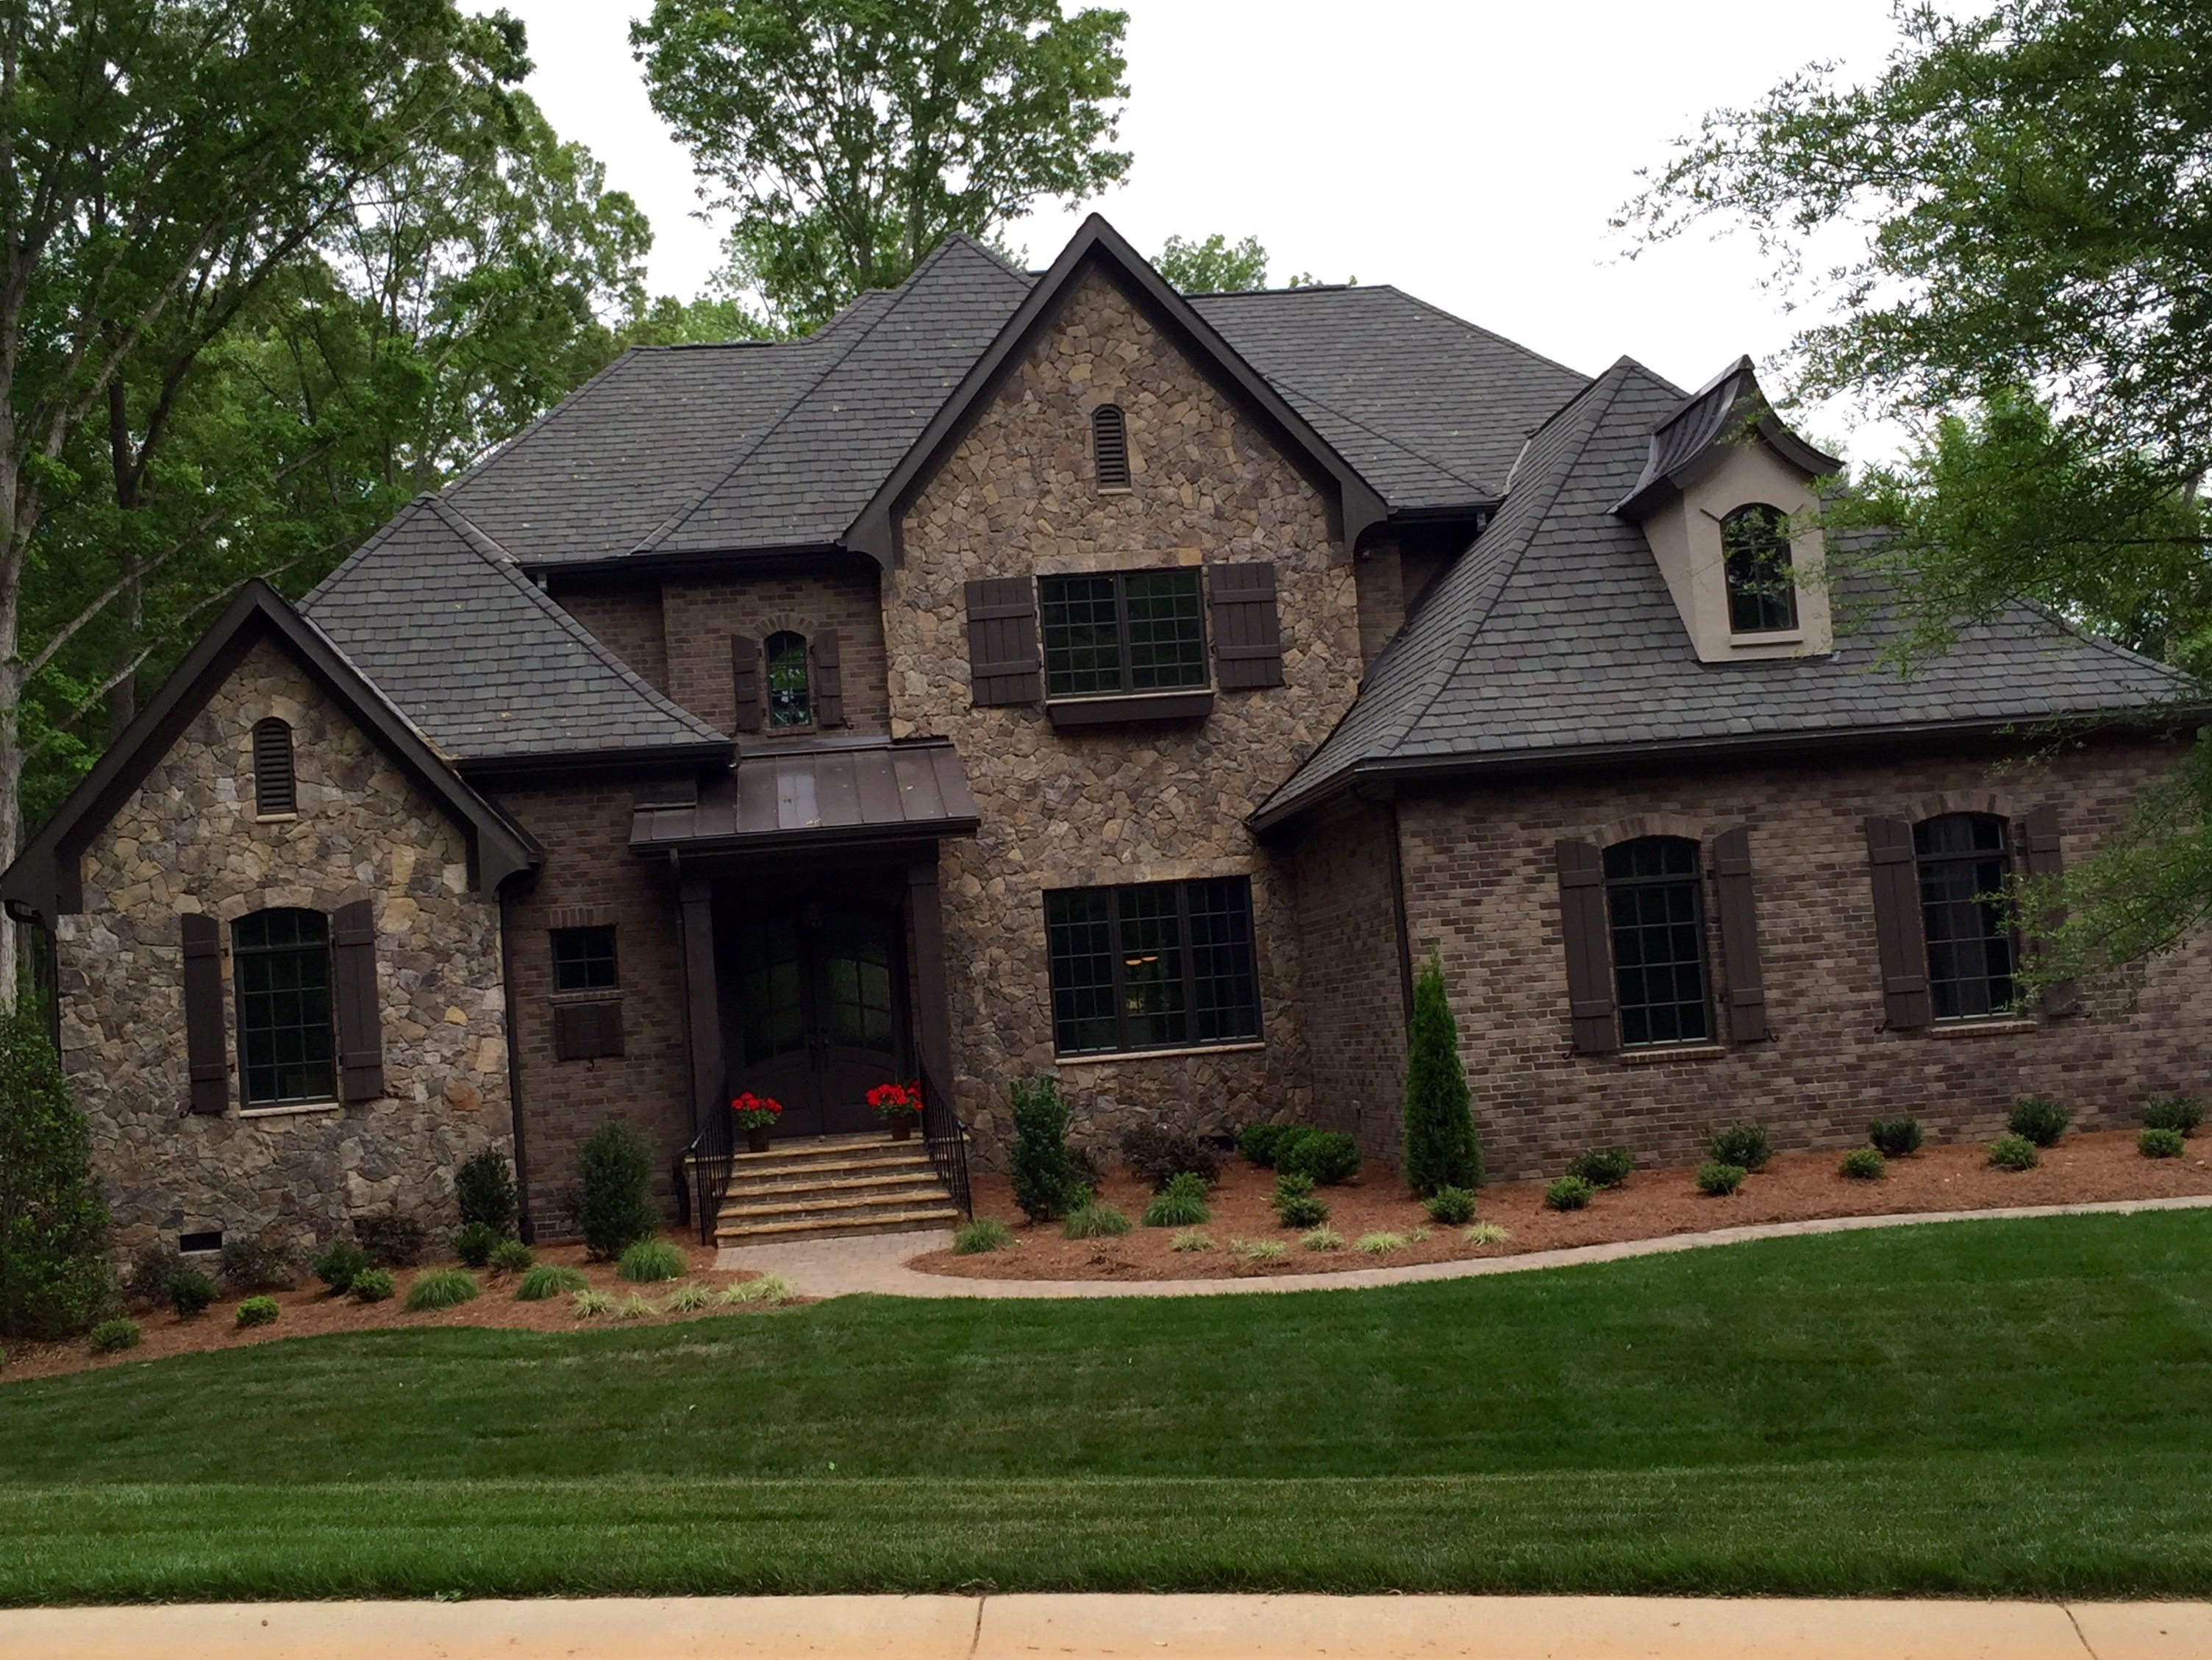 Arh asheville 1131f plan exterior 40 stone oakridge for Brick house with tin roof